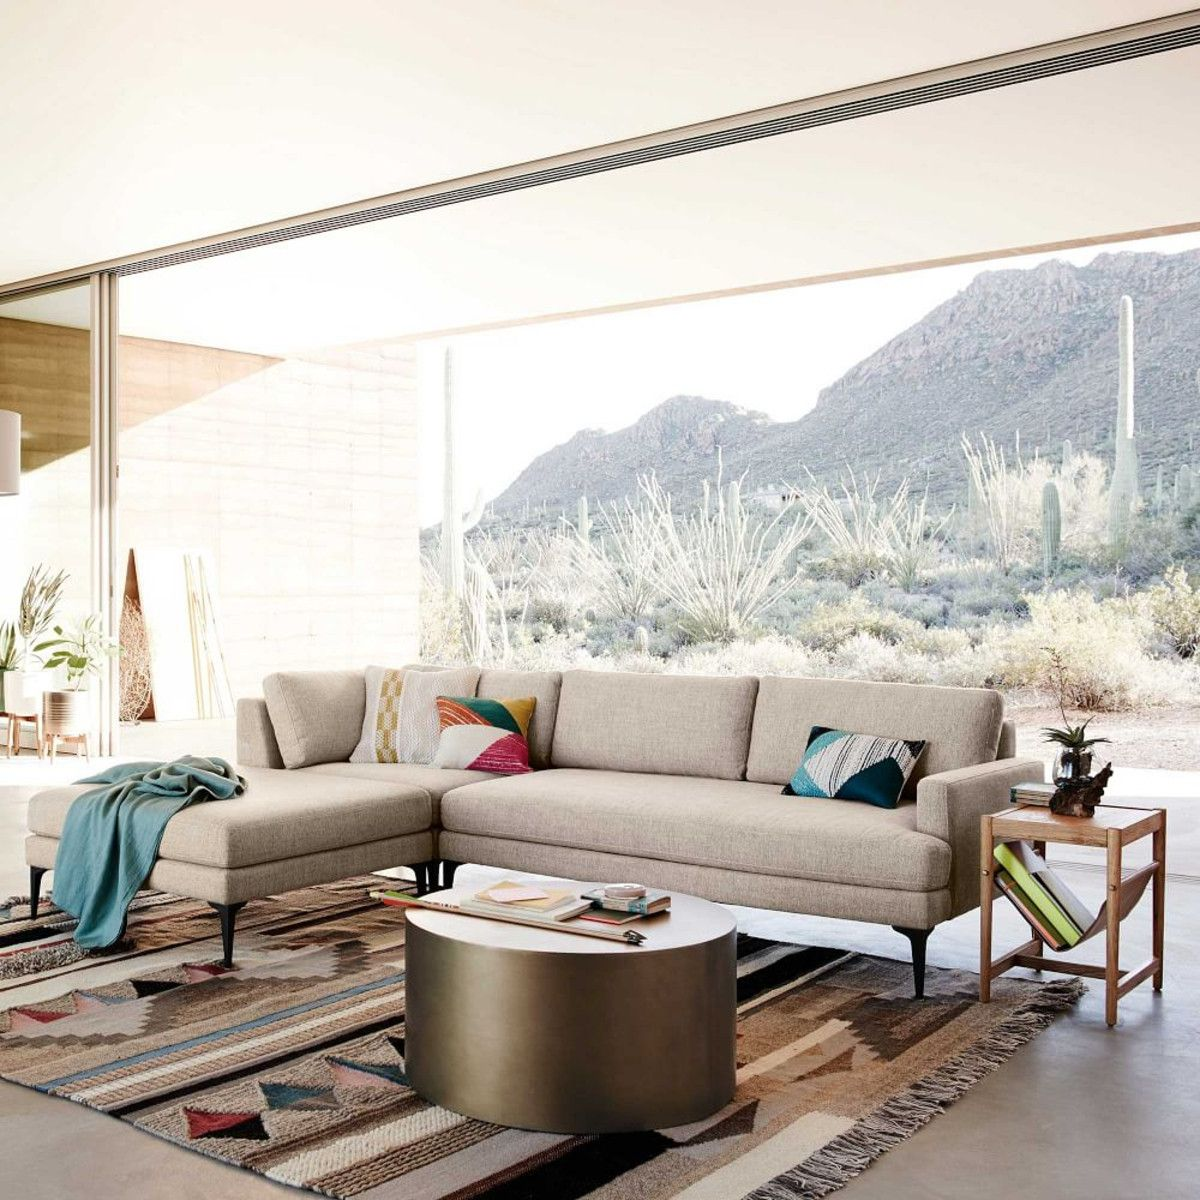 Andes 3-Piece Chaise Sectional | Mid century, Shelves and Window view